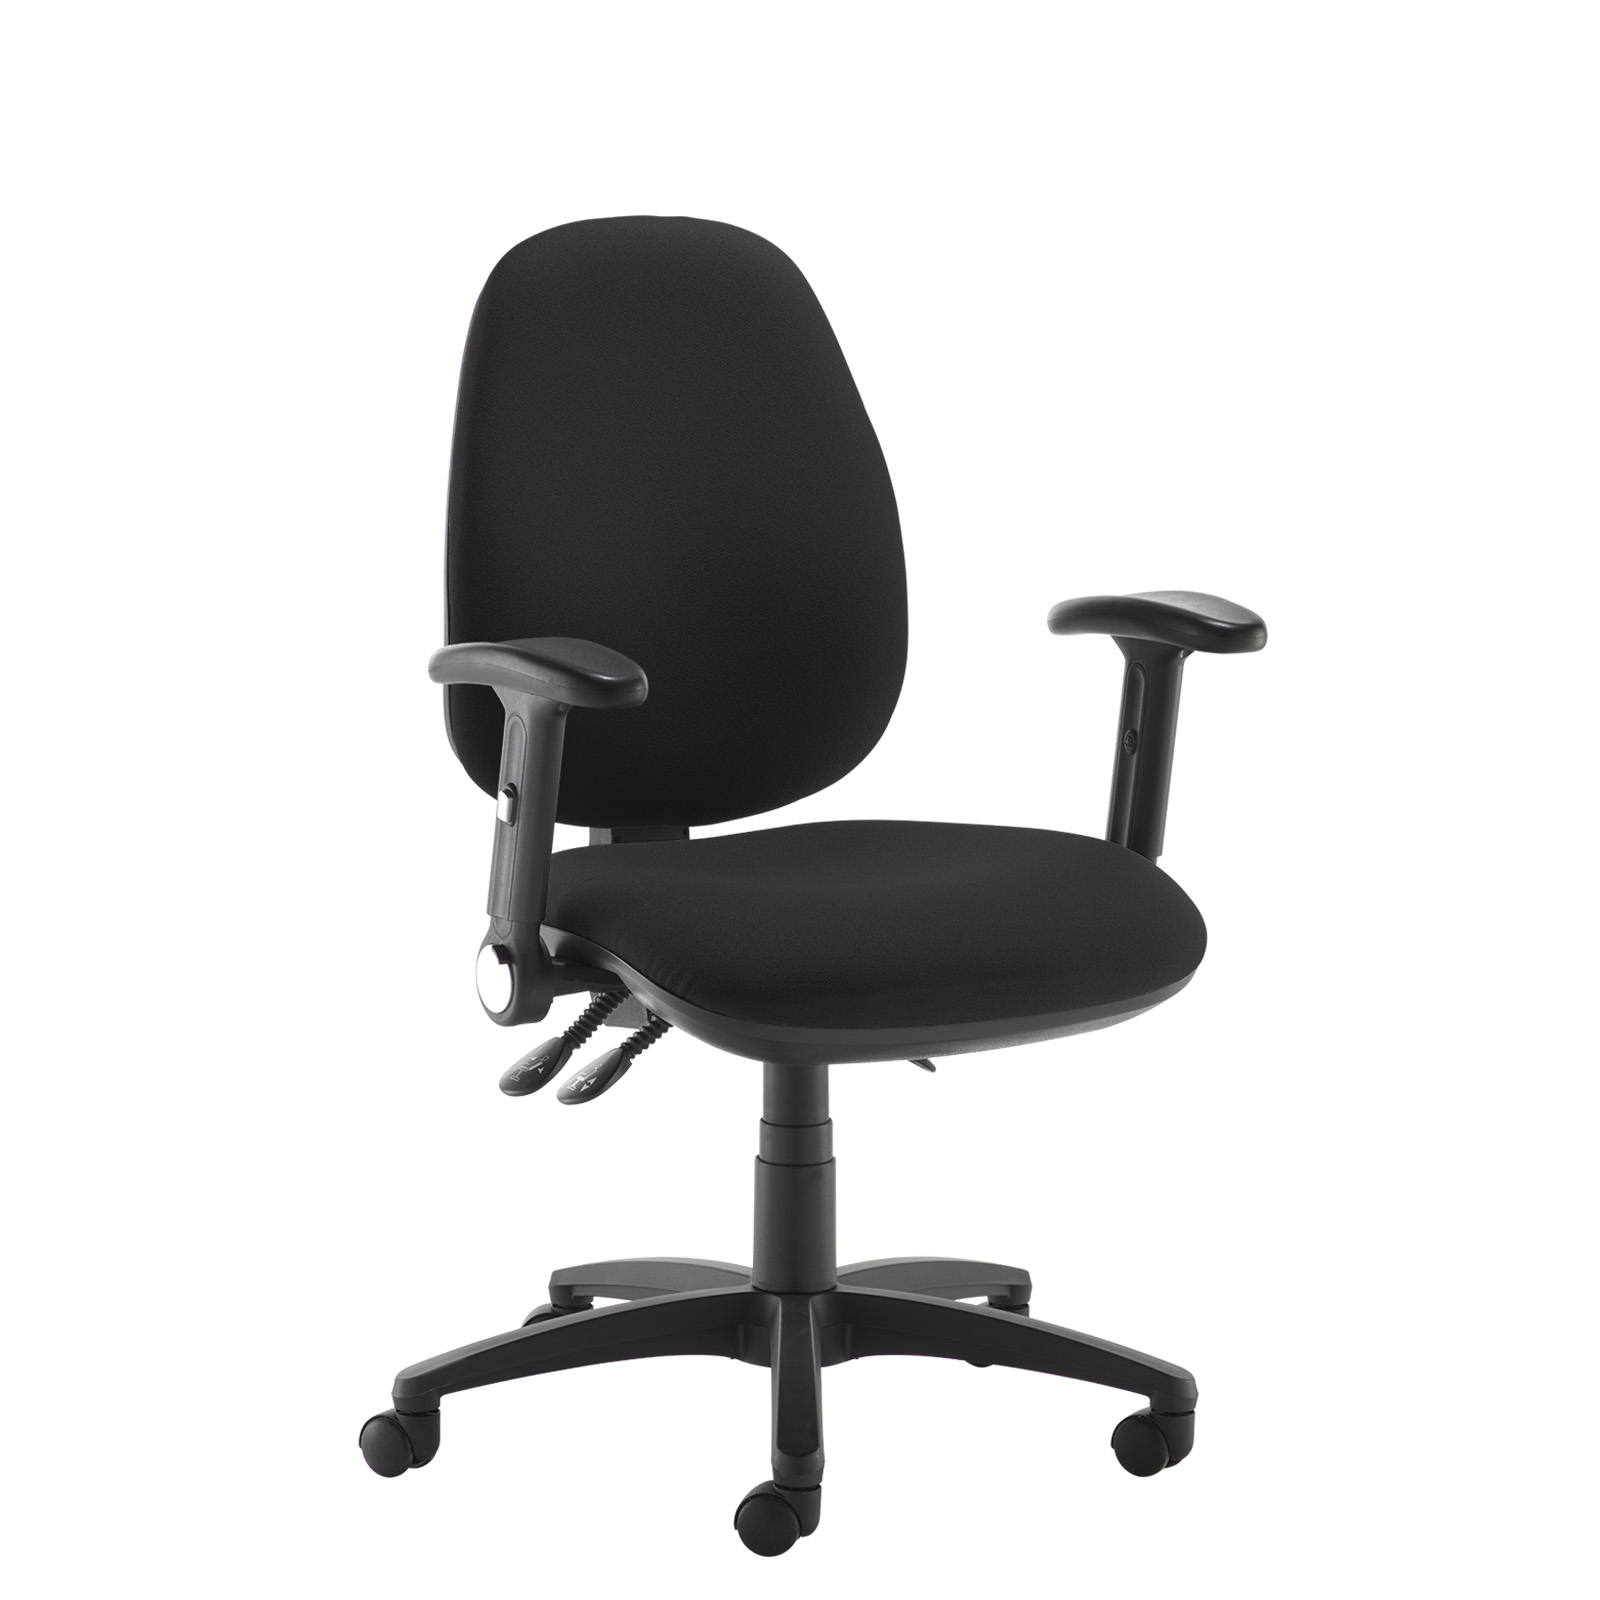 Desk Chairs Jota high back operator chair with folding arms - black